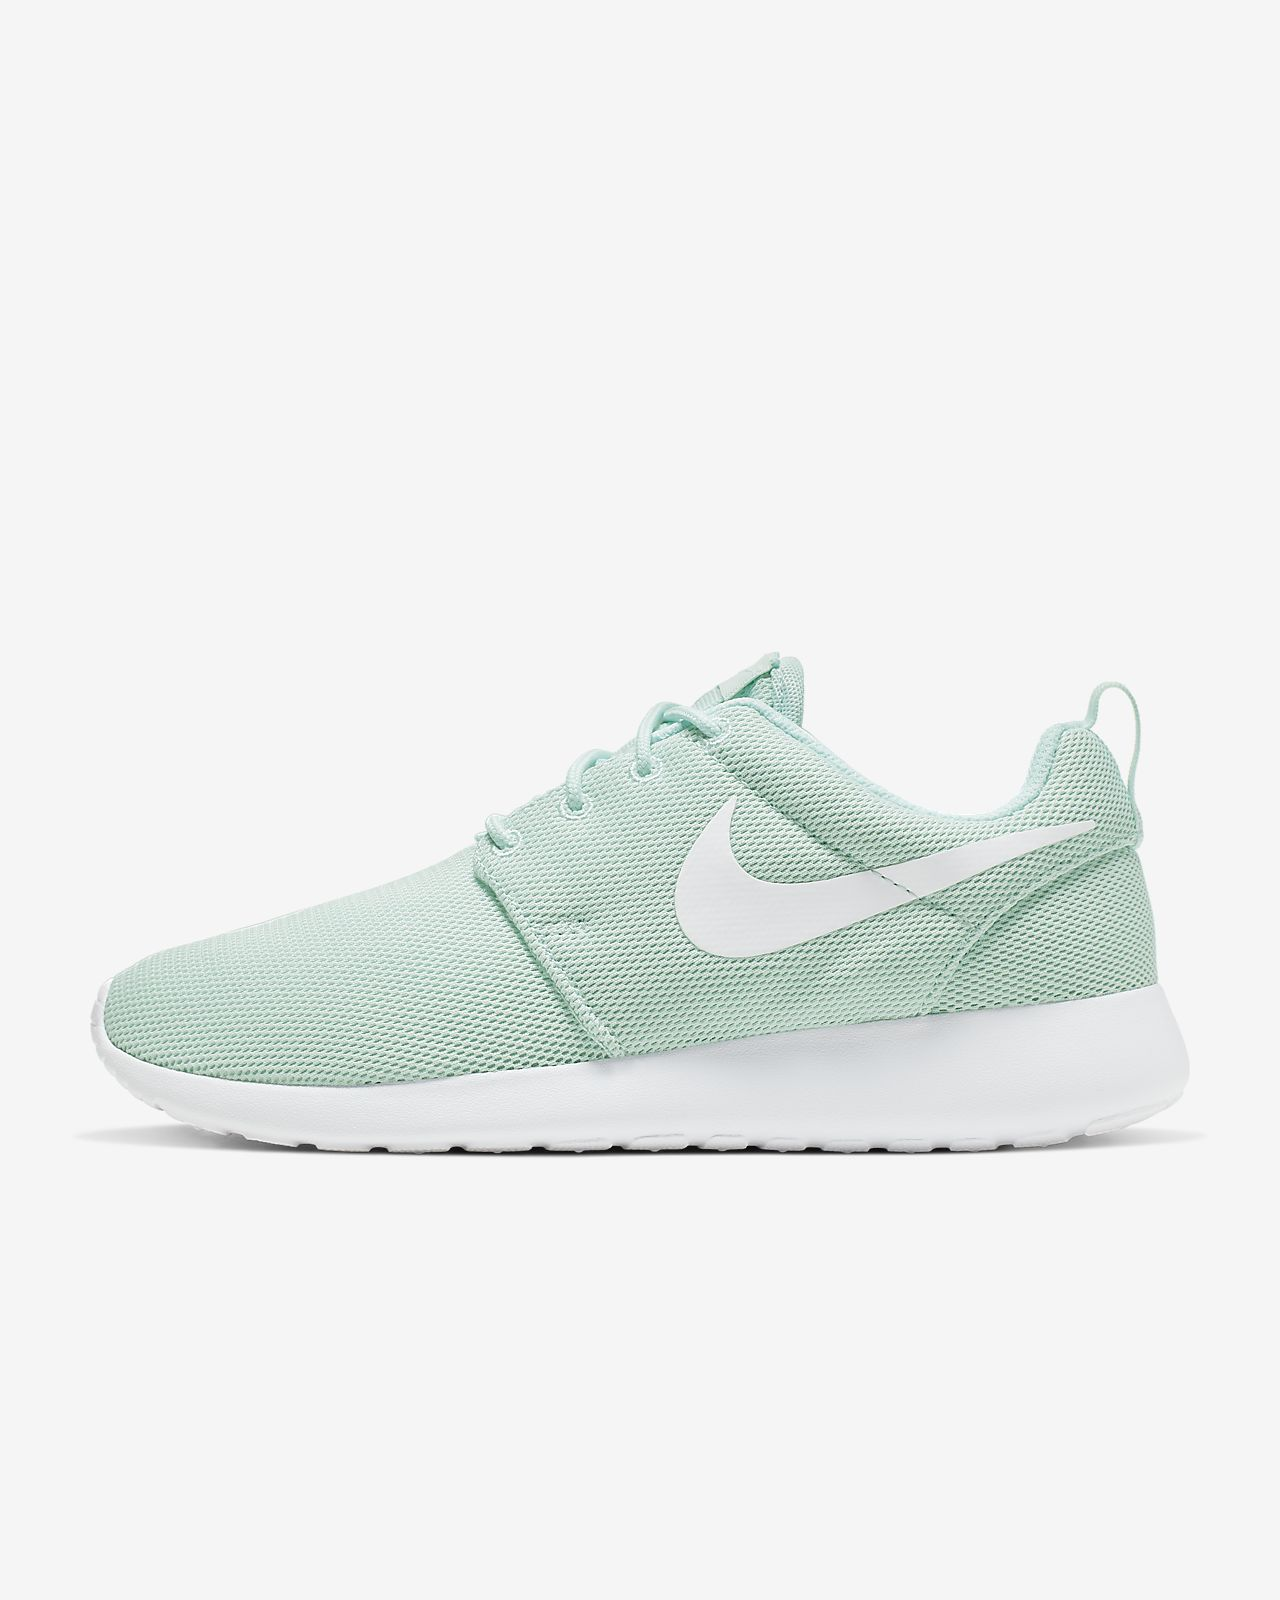 premium selection 39fba cc31f ... Nike Roshe One Women s Shoe